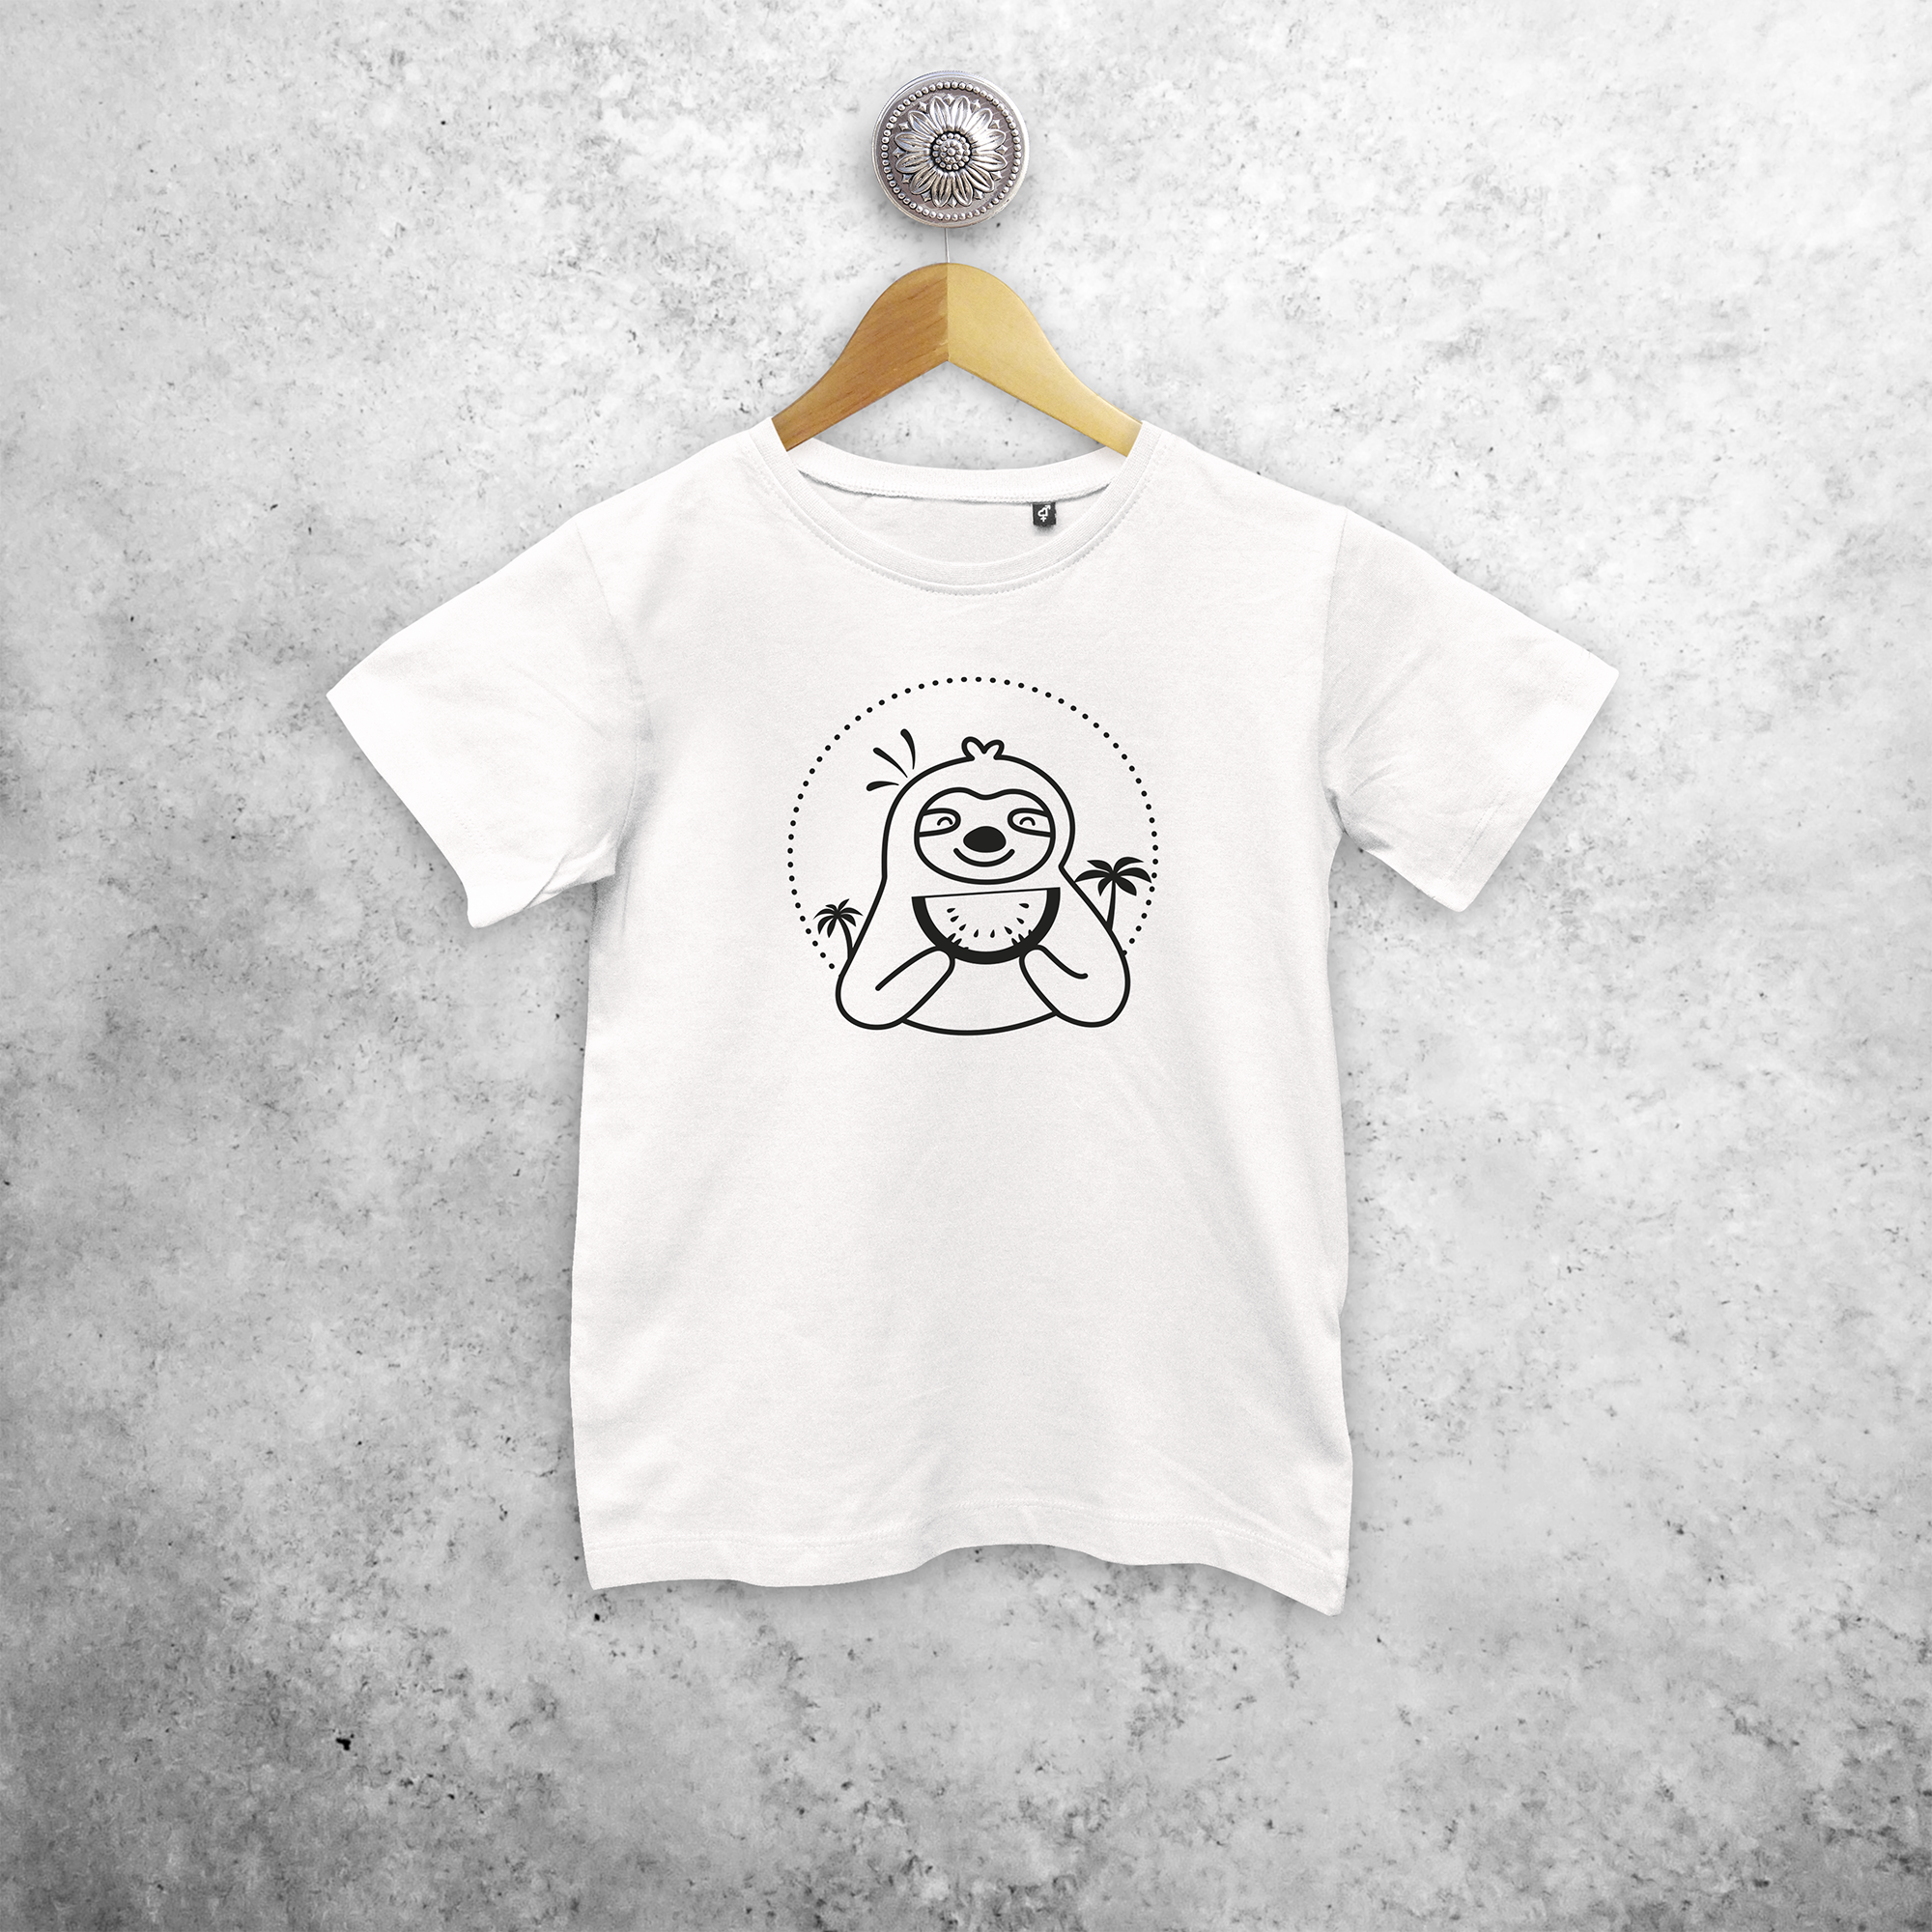 Sloth kids shortsleeve shirt